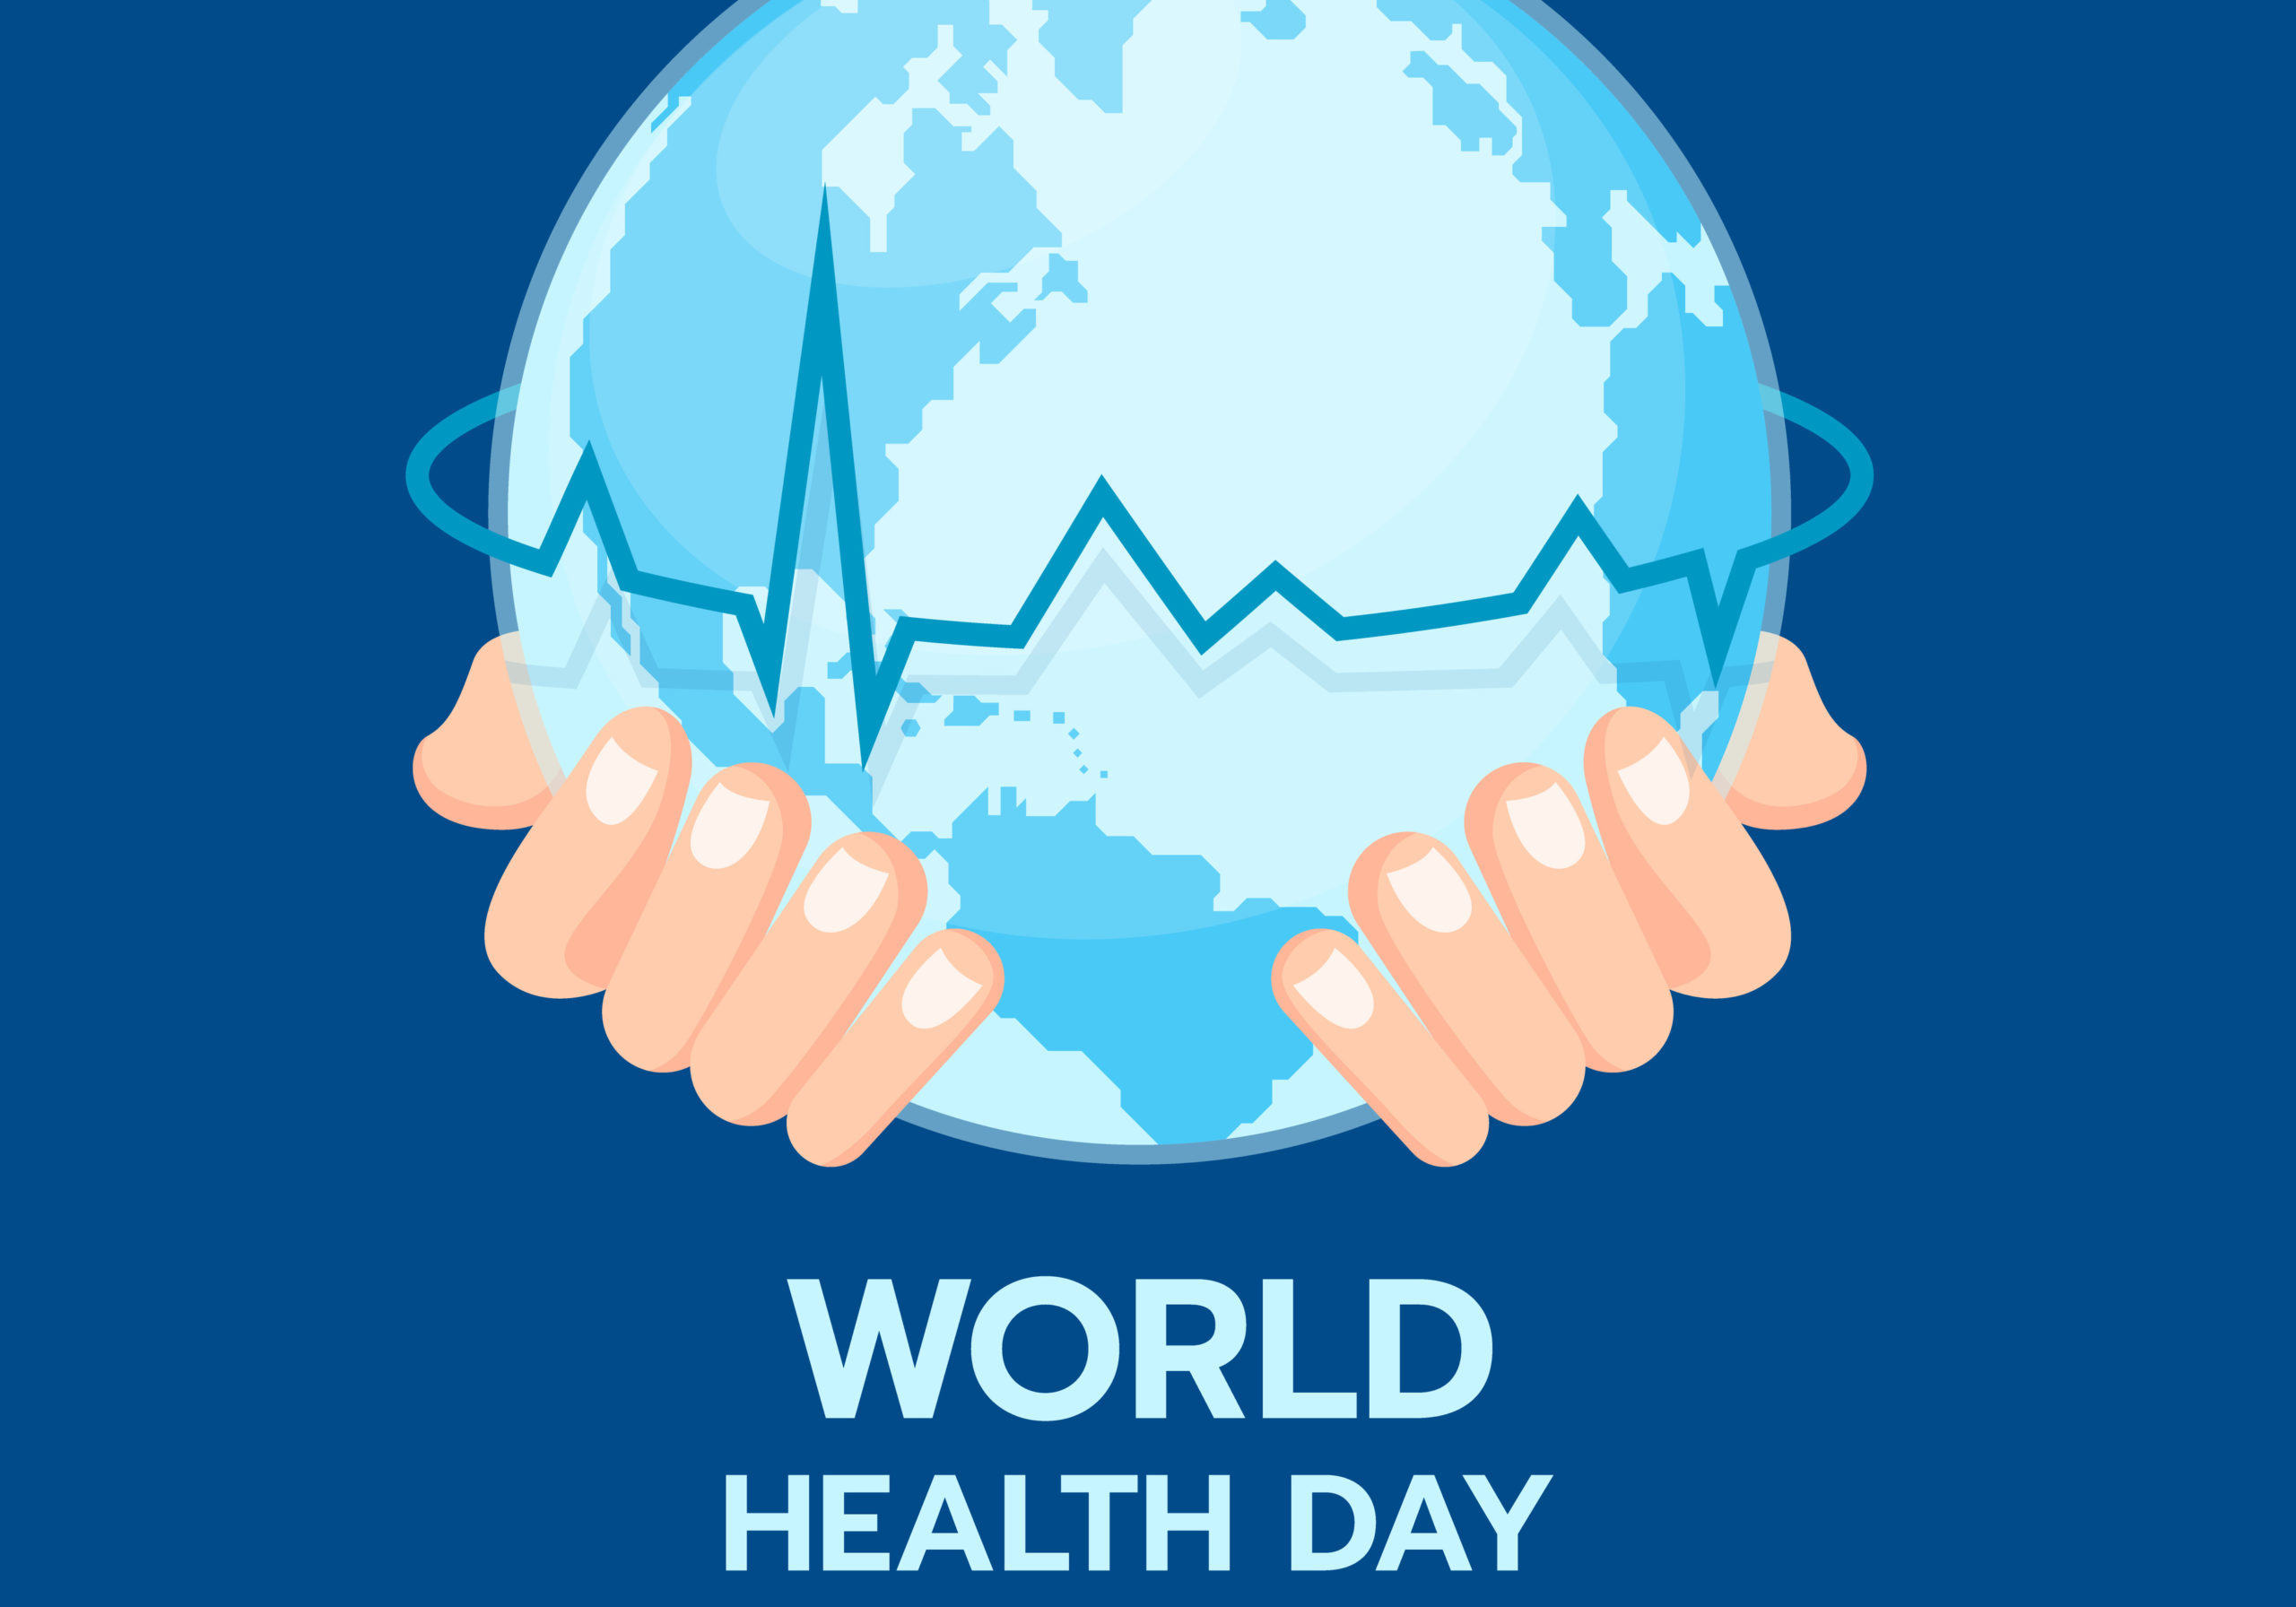 World health day banner with hand hold circle world and line heart wave around on blue background vector design